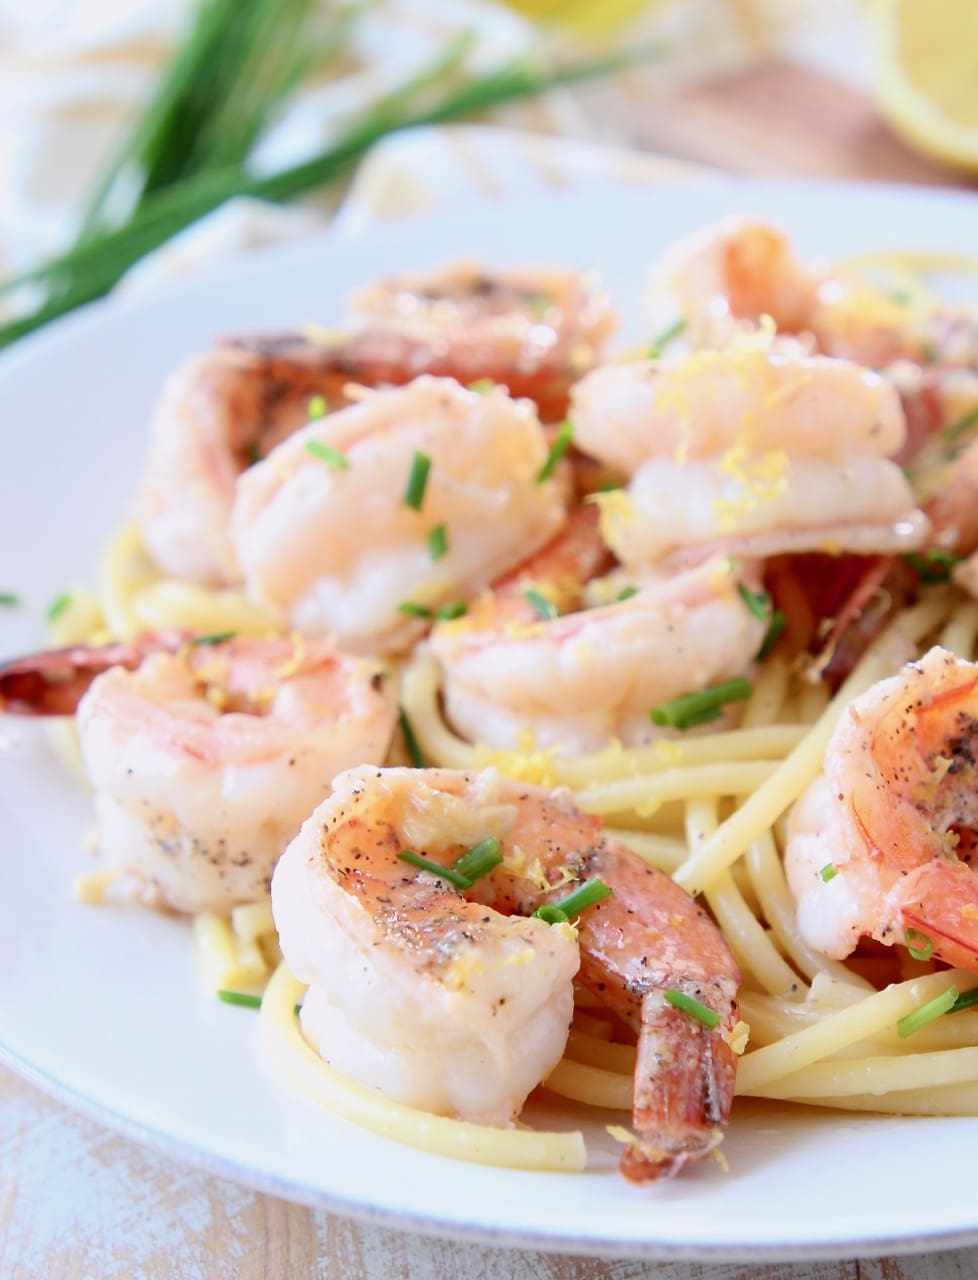 Shrimp scampi on top of bucatini pasta on white plate